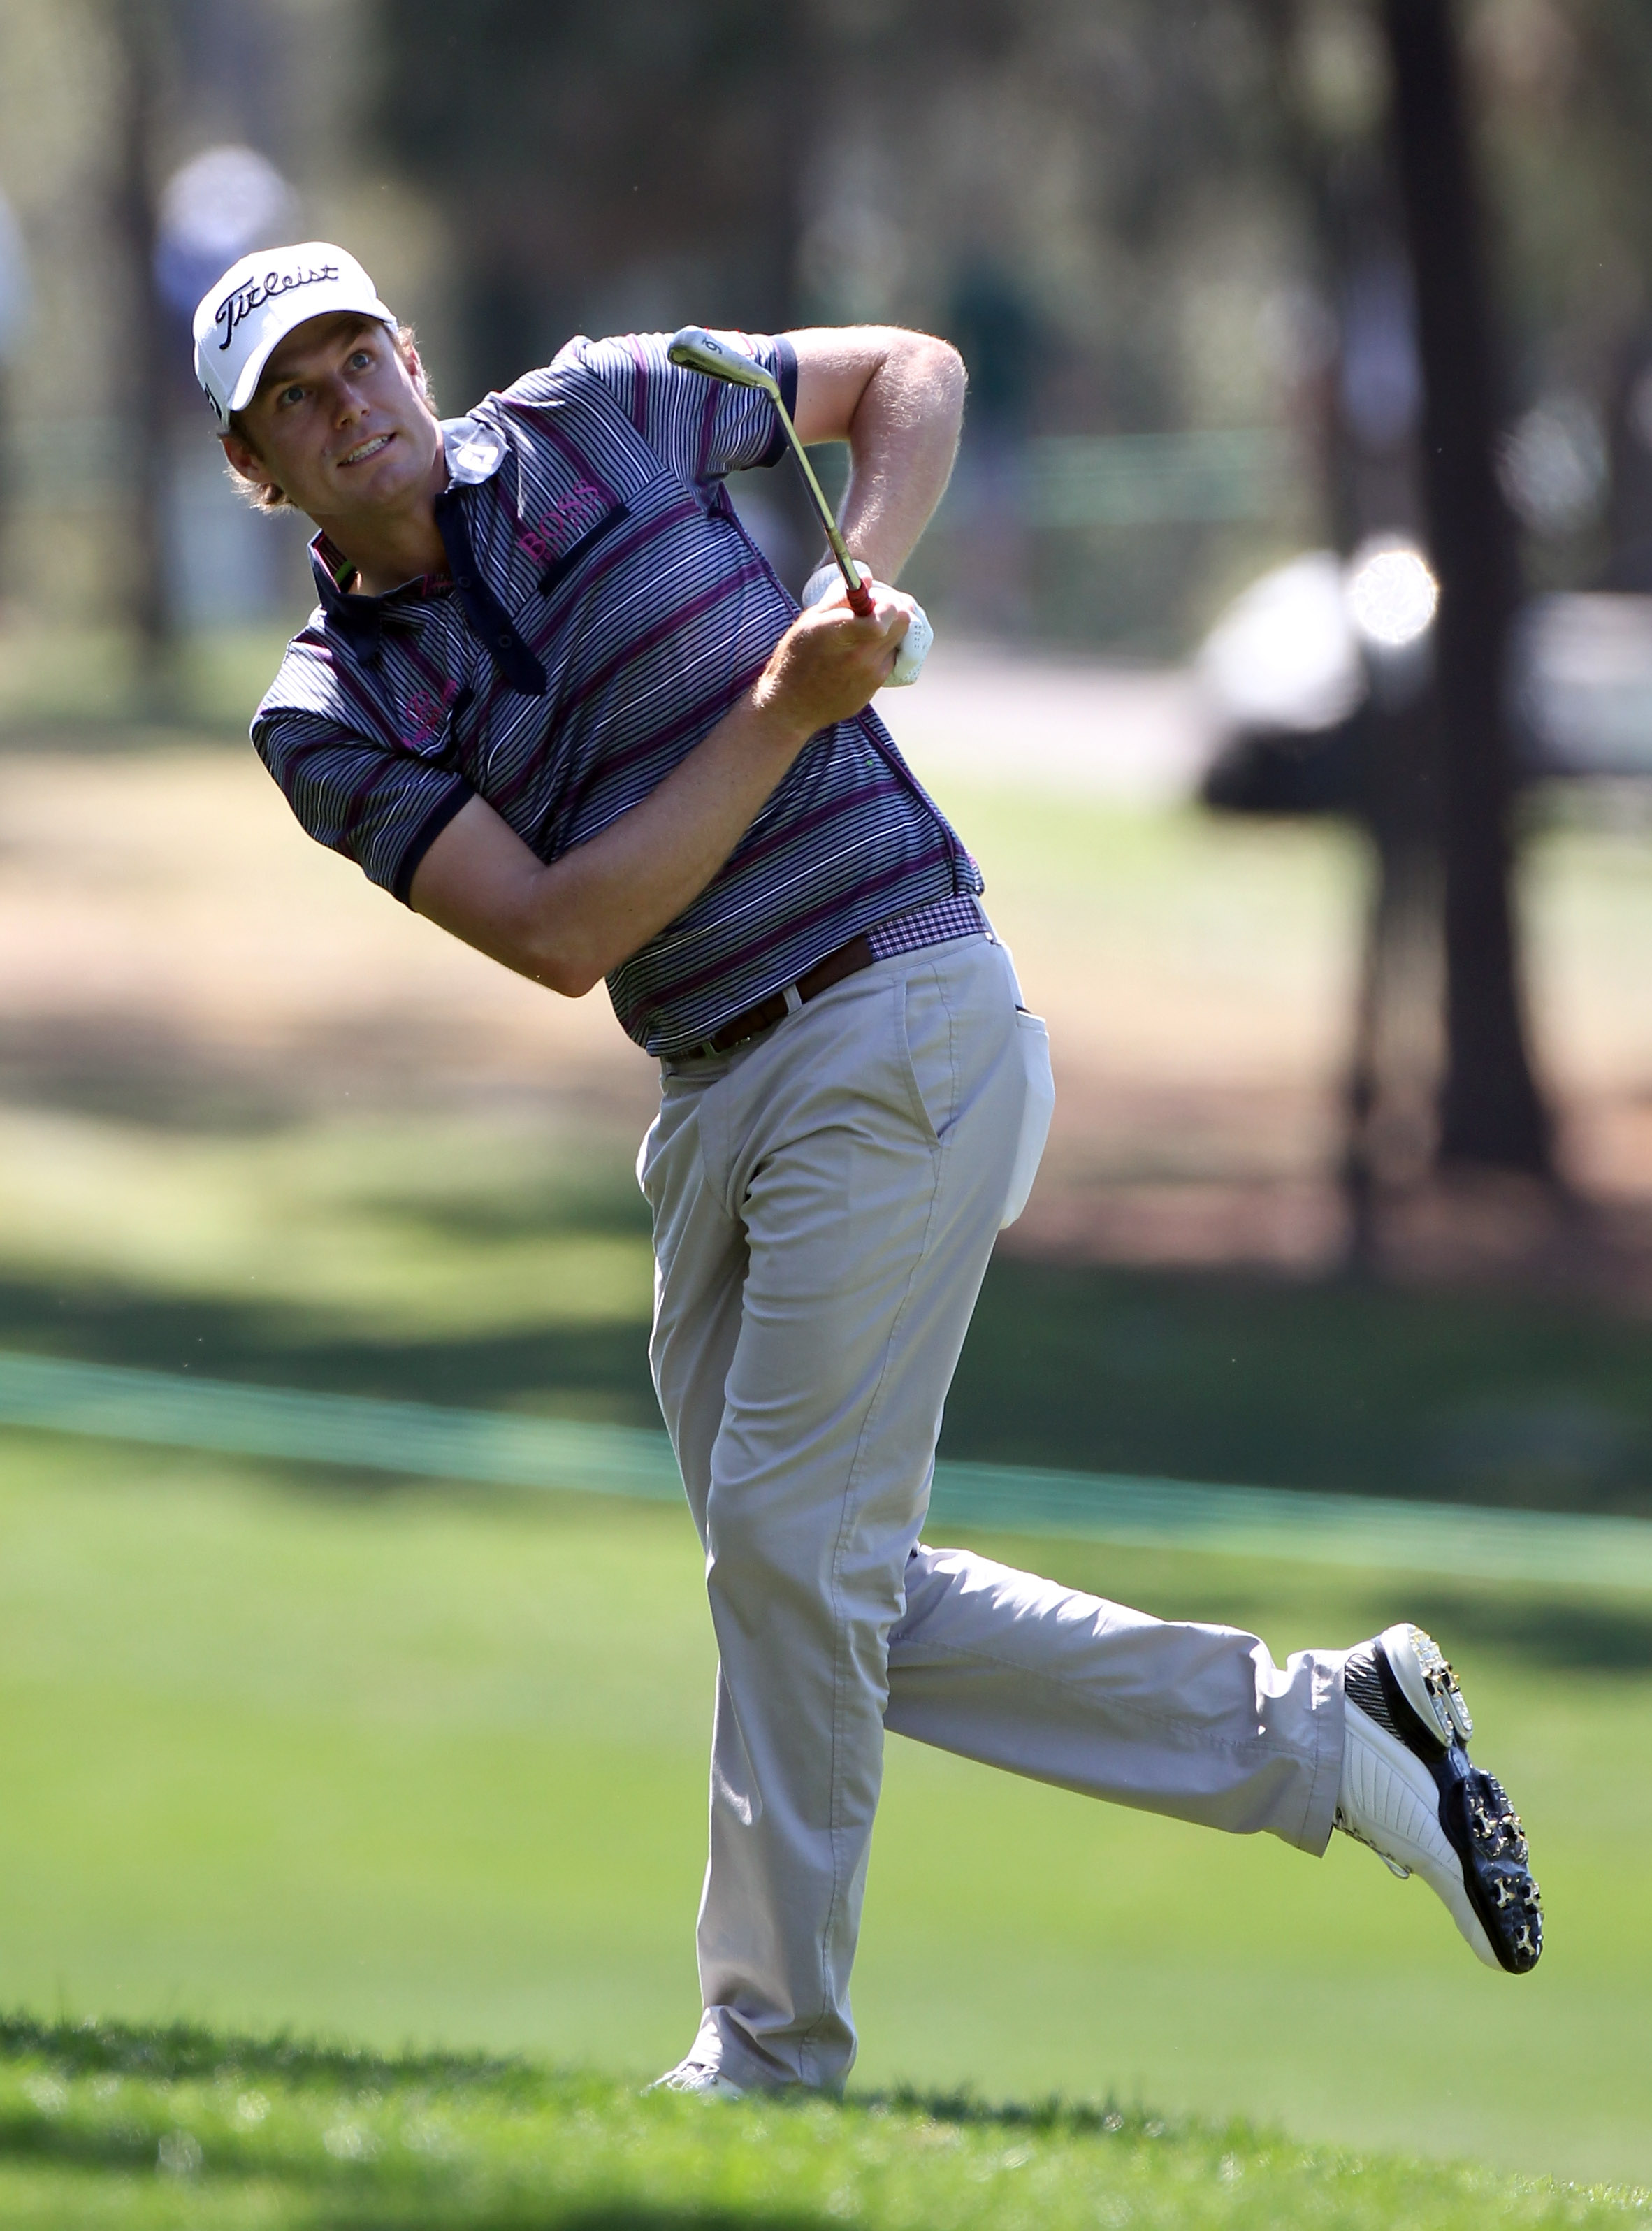 PALM HARBOR, FL - MARCH 17:  Nick Watney plays a shot on the 6th hole during the first round of the Transitions Championship at Innisbrook Resort and Golf Club on March 17, 2011 in Palm Harbor, Florida.  (Photo by Sam Greenwood/Getty Images)